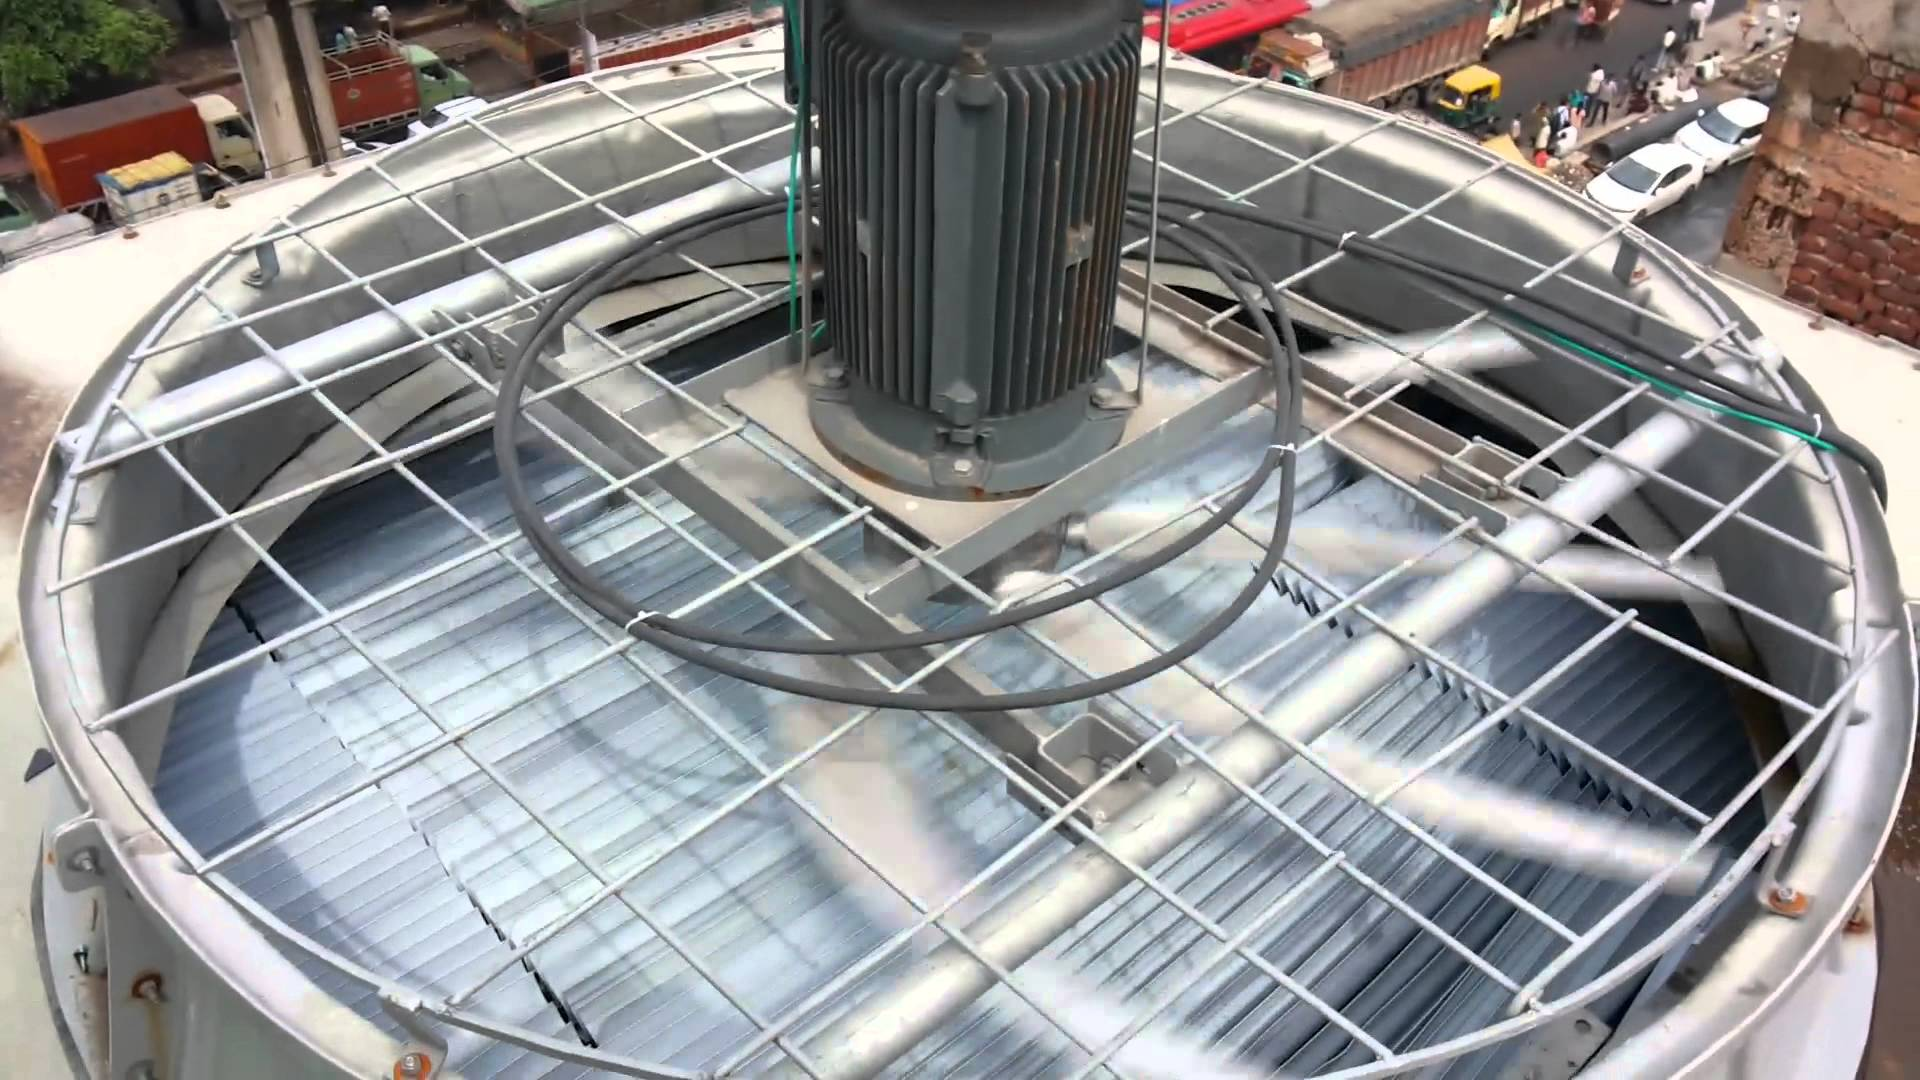 Cooling Tower Fan : ᐅ best cooling tower fans reviews → compare now